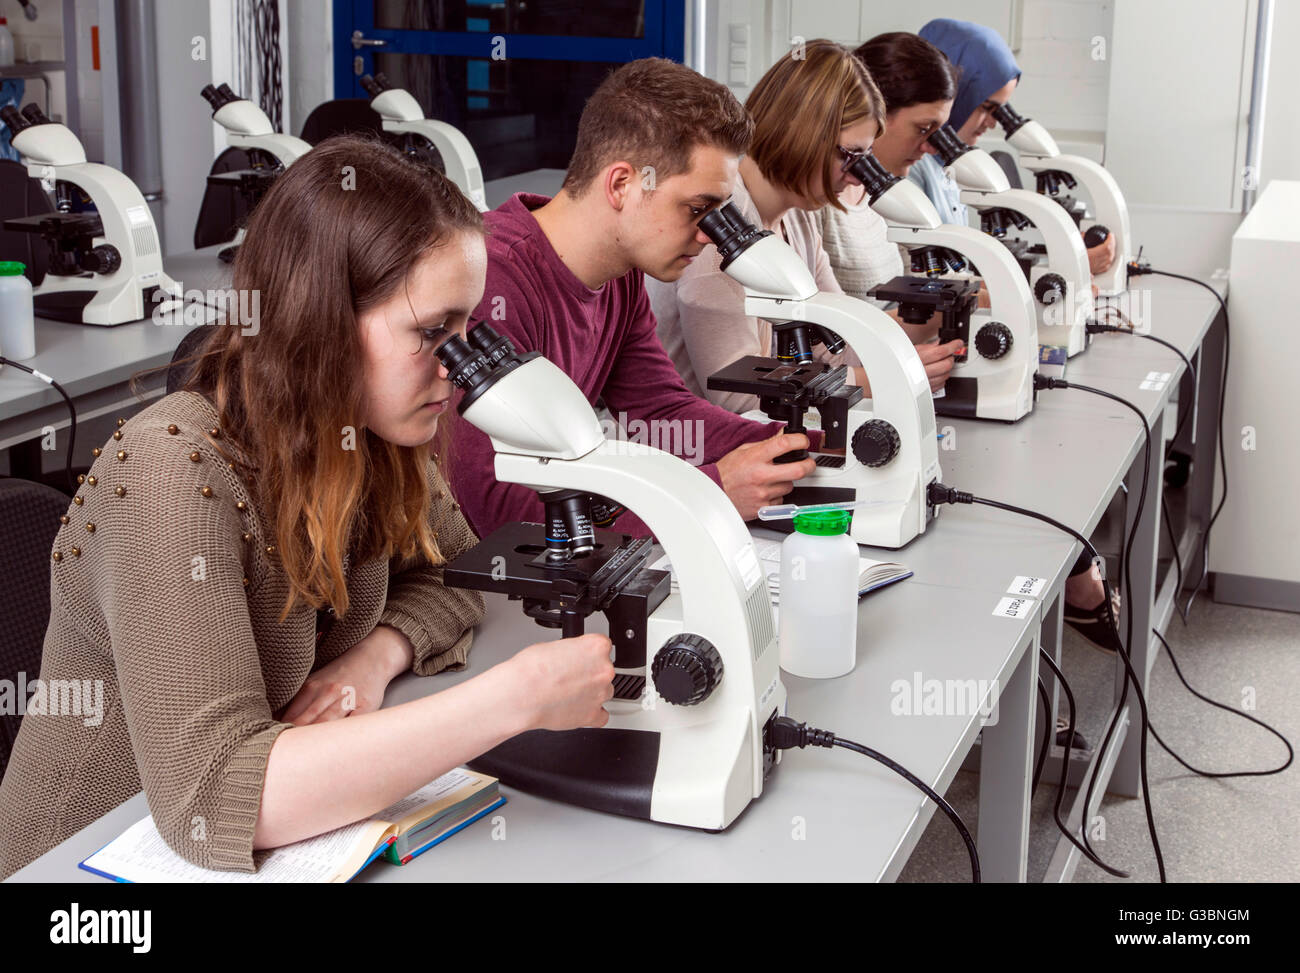 Students in a microscopy course at the university DUE - Stock Image